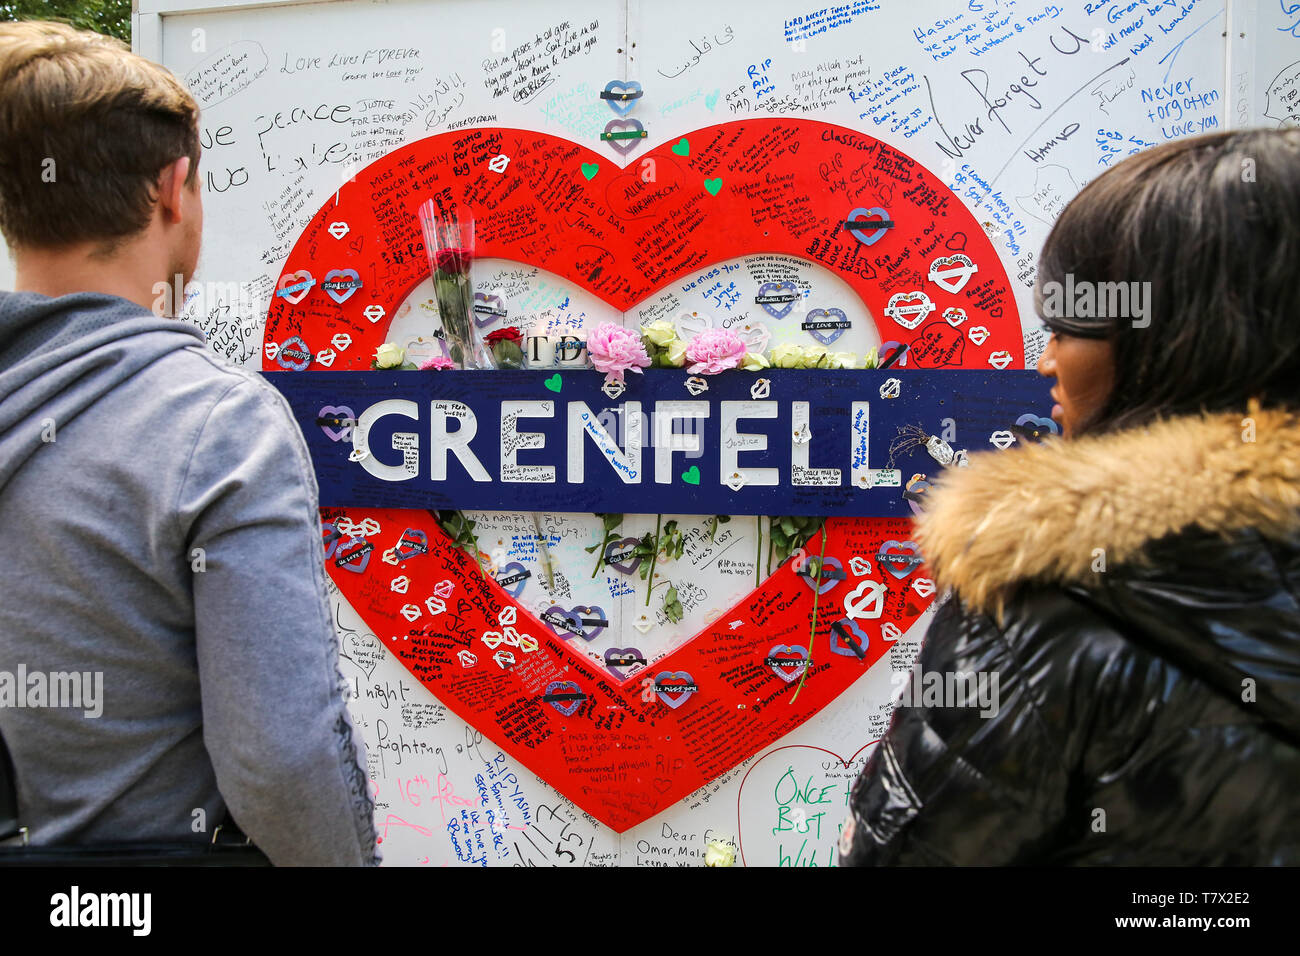 People seen looking at a Grenfell placard. On 14 June 2017, a fire broke out in the 24-storey Grenfell Tower block of flats in North Kensington, West London where 72 people died, more than 70 others were injured and 223 people escaped. The UK Government is to fund an estimated £200 million to replacement of unsafe Grenfell style cladding on around 170 high-rise private residential buildings after private building owners failed to take action. Communities Secretary James Brokenshire said inaction from building owners had compelled the government to act. Stock Photo